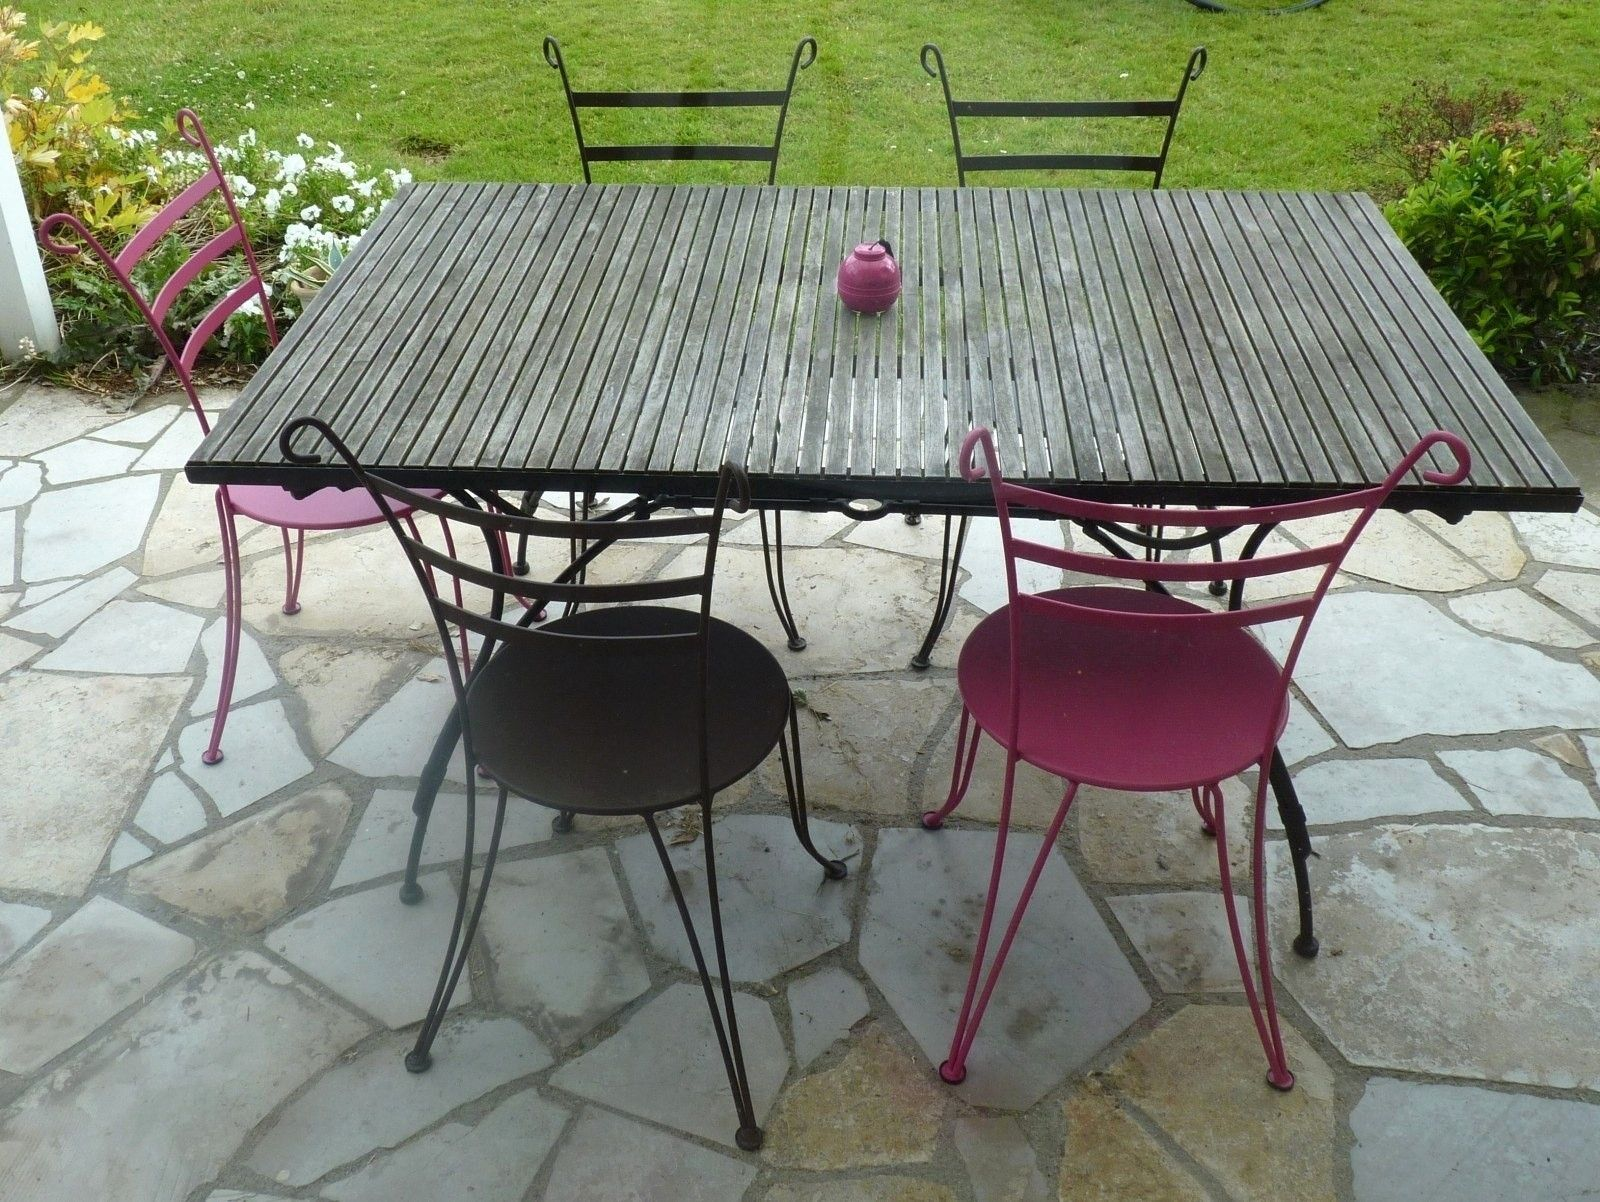 Pin By Ketty Corp On Idees De Meubles Outdoor Tables Outdoor Decor Indoor Garden